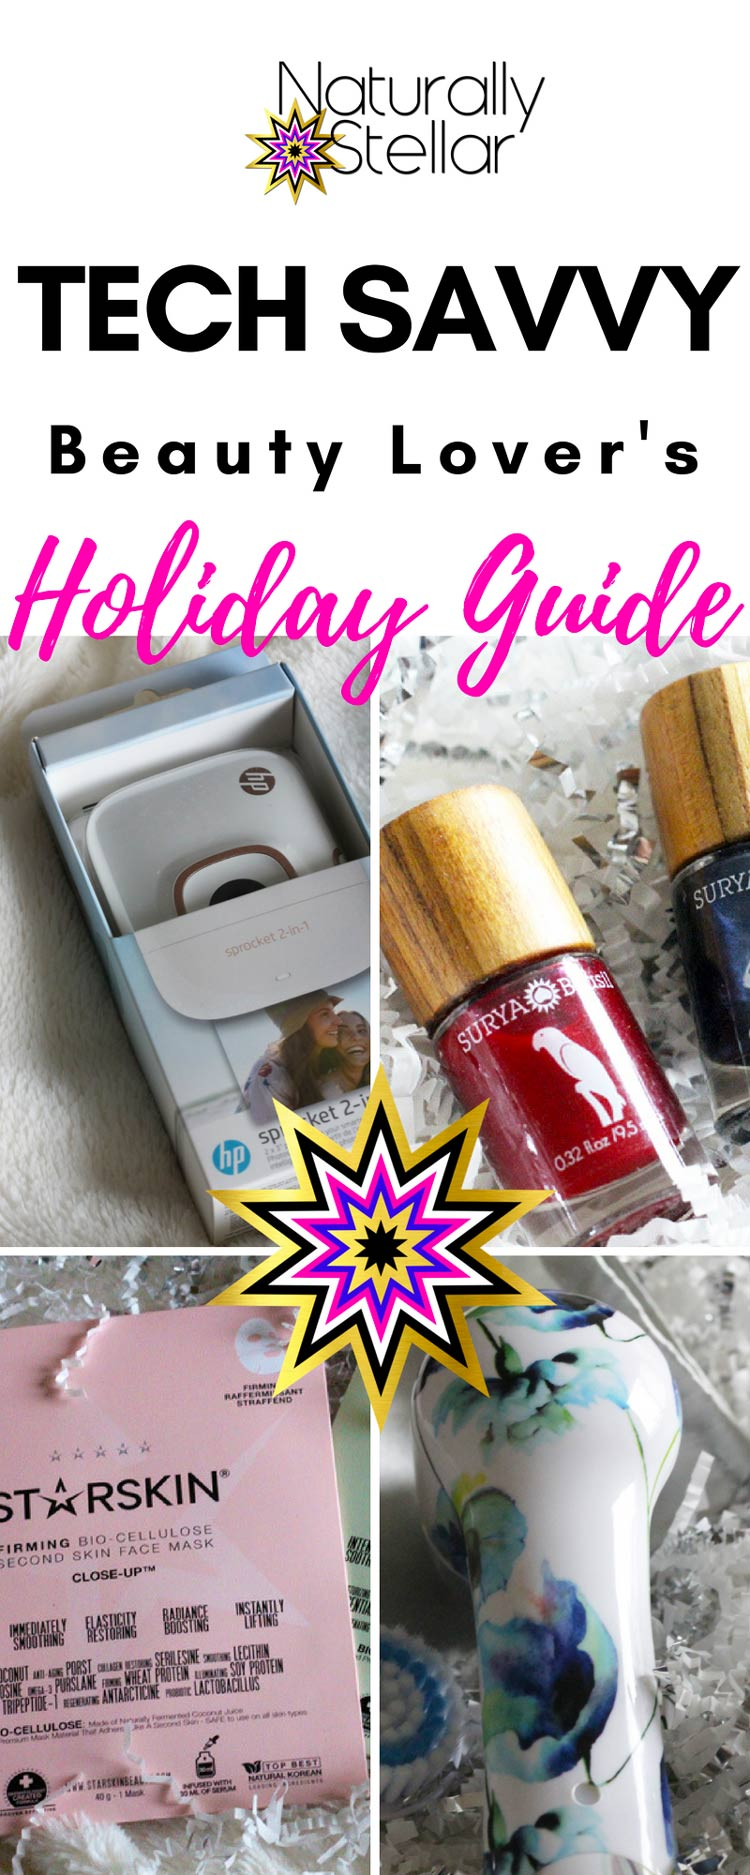 Tech Savvy Beauty Lovers Holiday Guide | Naturally Stellar